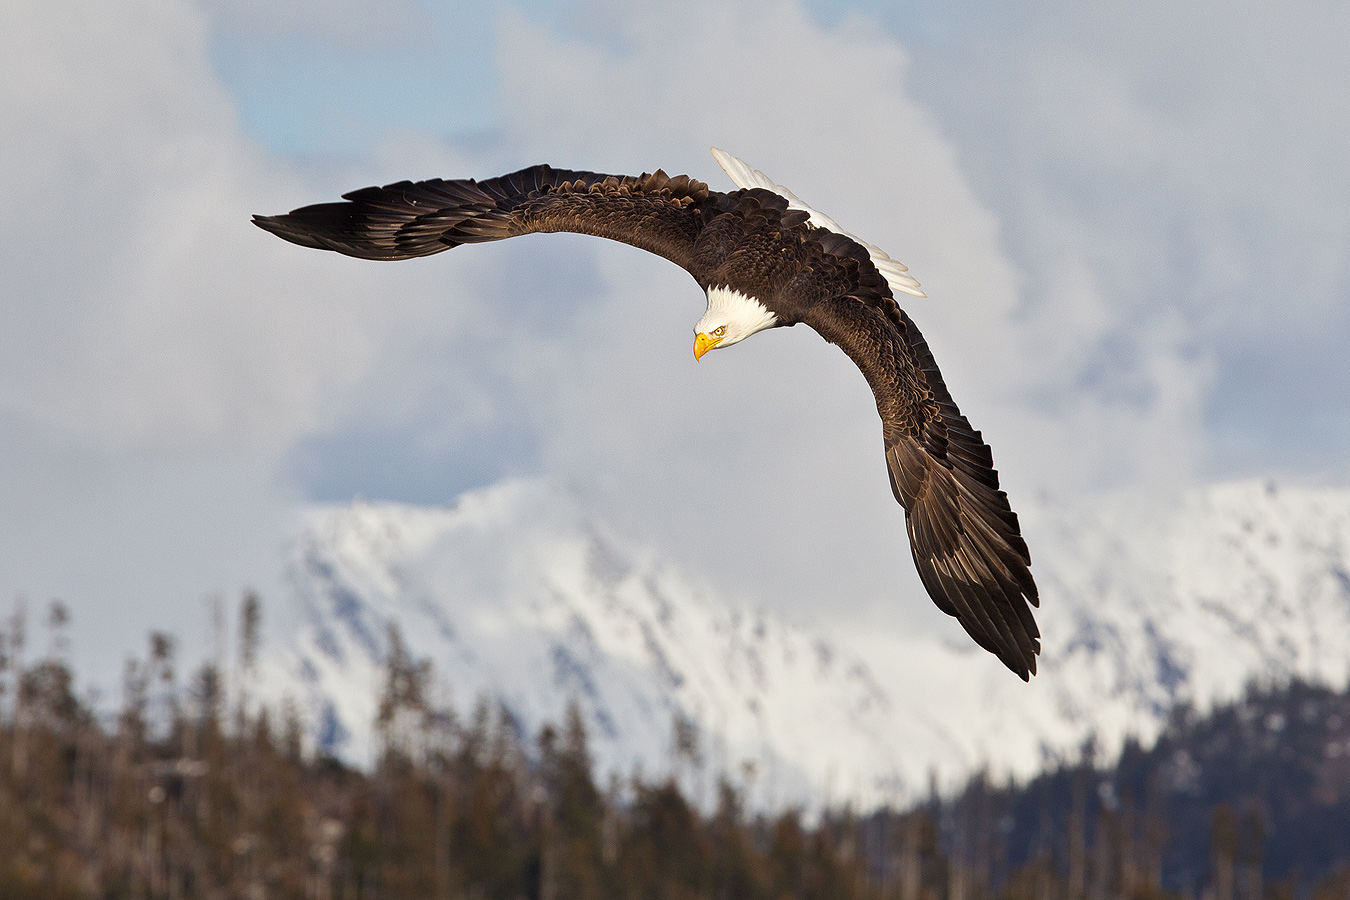 flight_clemens-vanderwerf-bald-eagle-top-view-with-mountain-bkgd_e07g6510-homer-ak_0